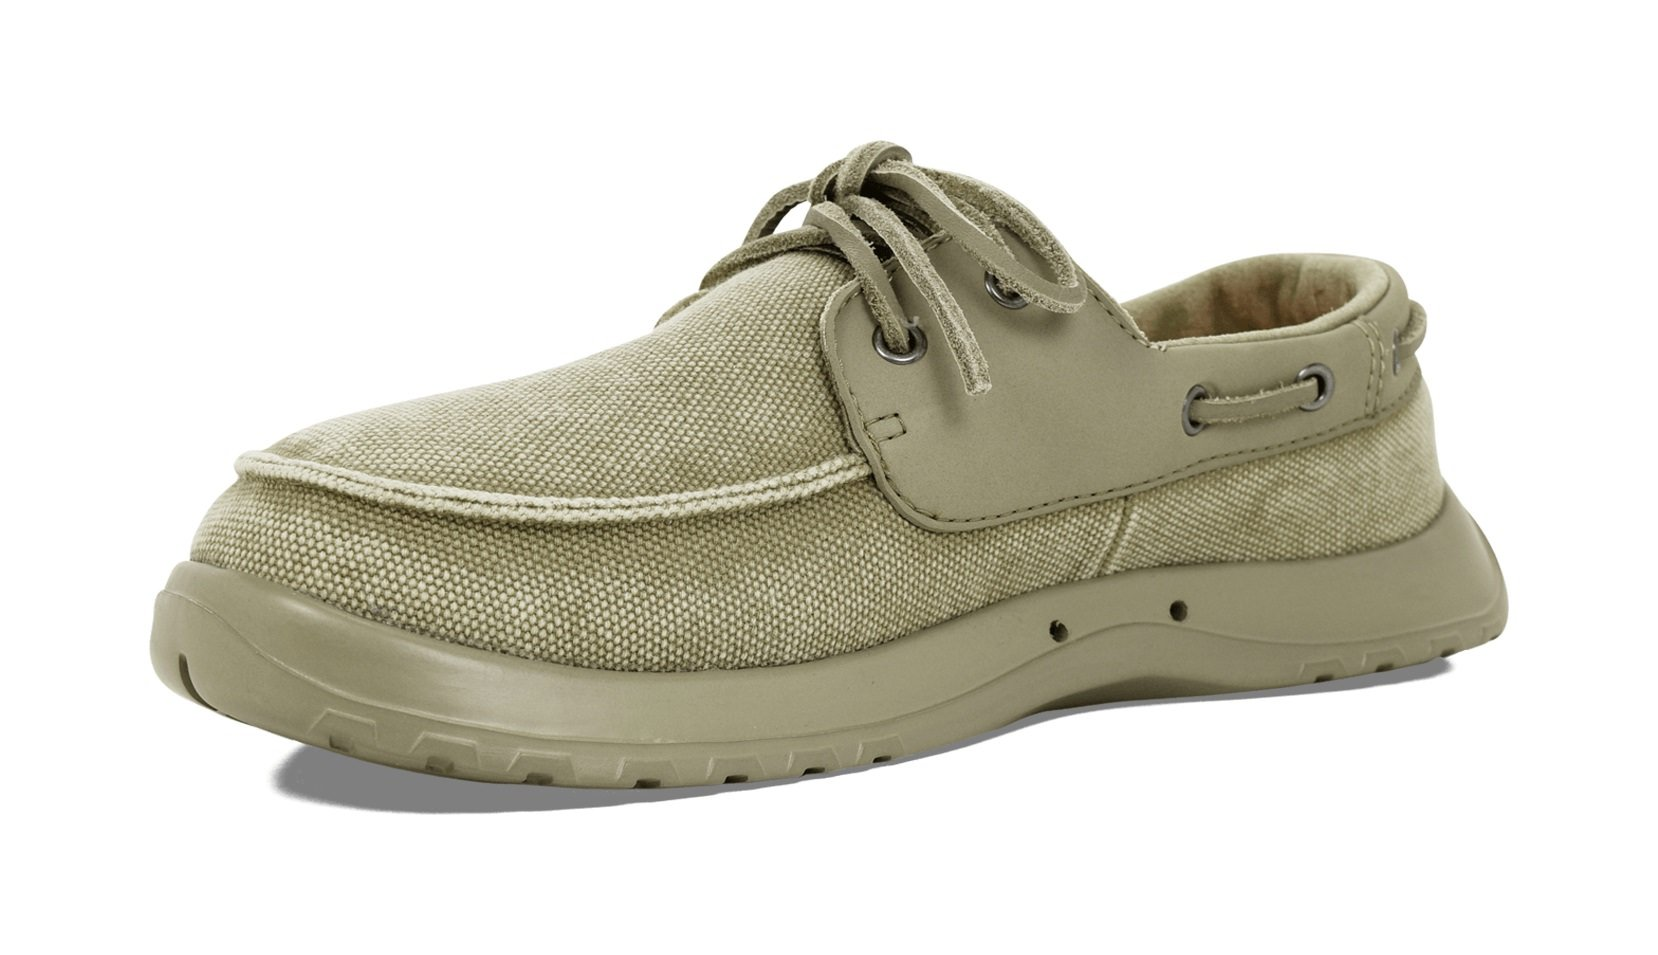 SoftScience The Cruise Canvas Men's Boating Shoes - Khaki, Size 8 by SoftScience